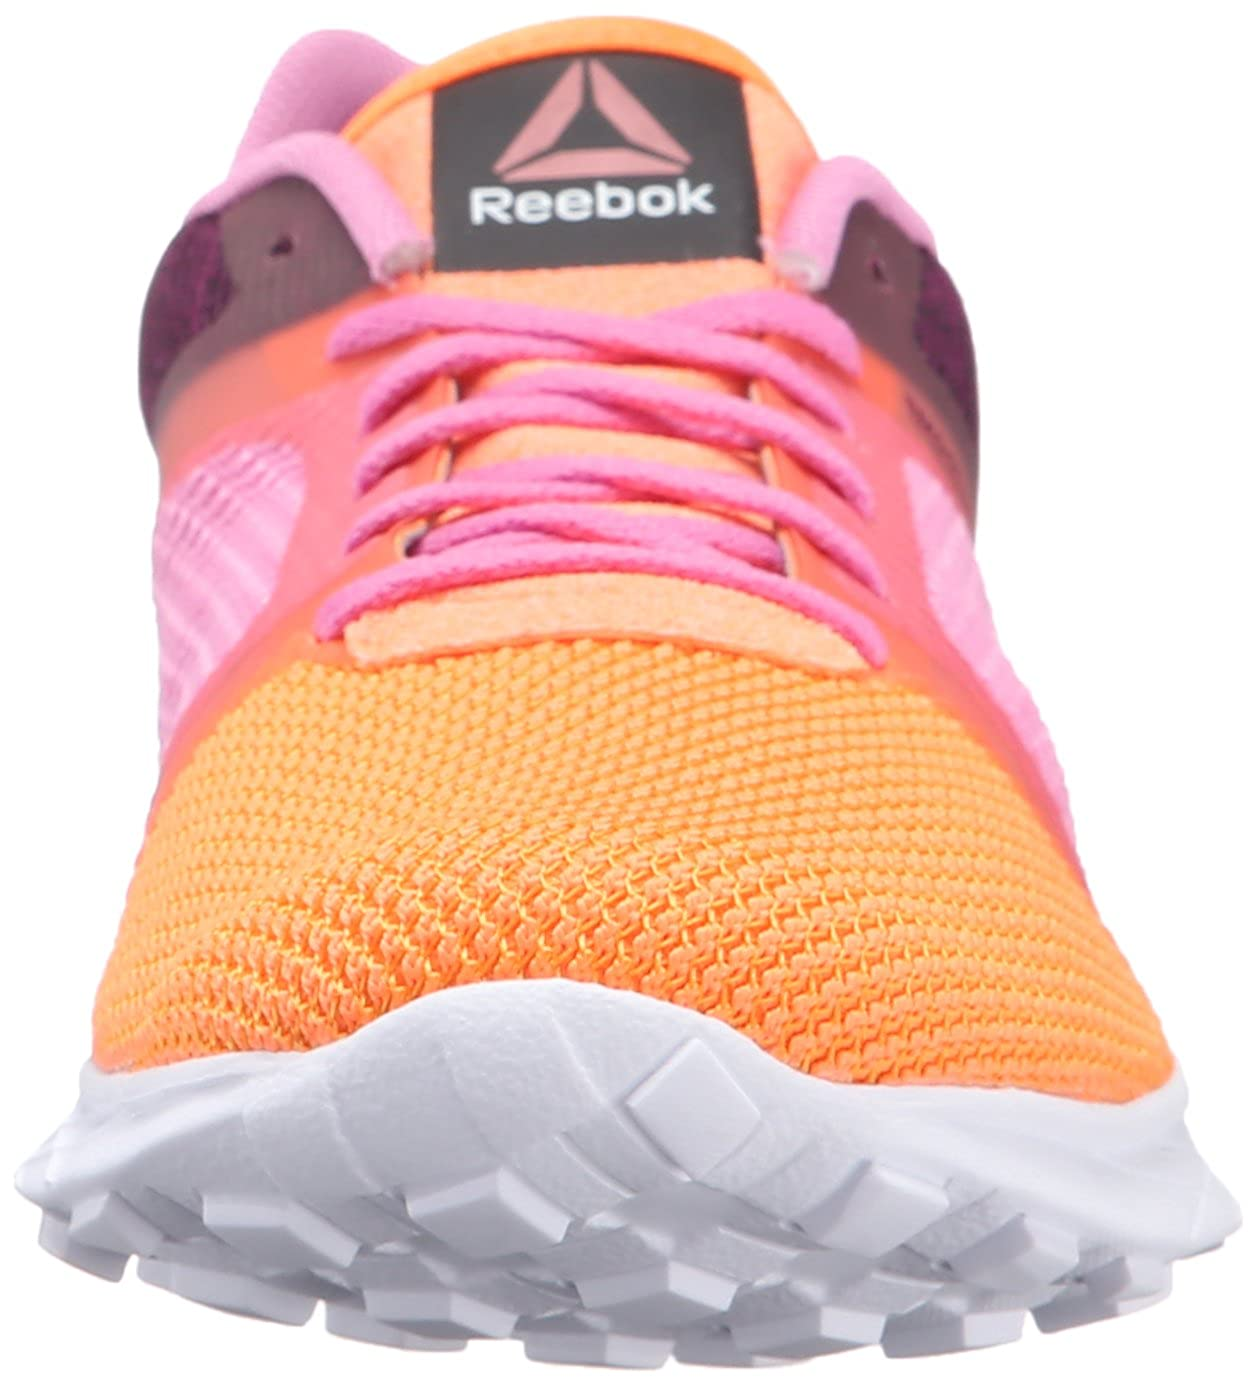 Reebok Women s Sublite Speedpak Athletic MT Running Shoe